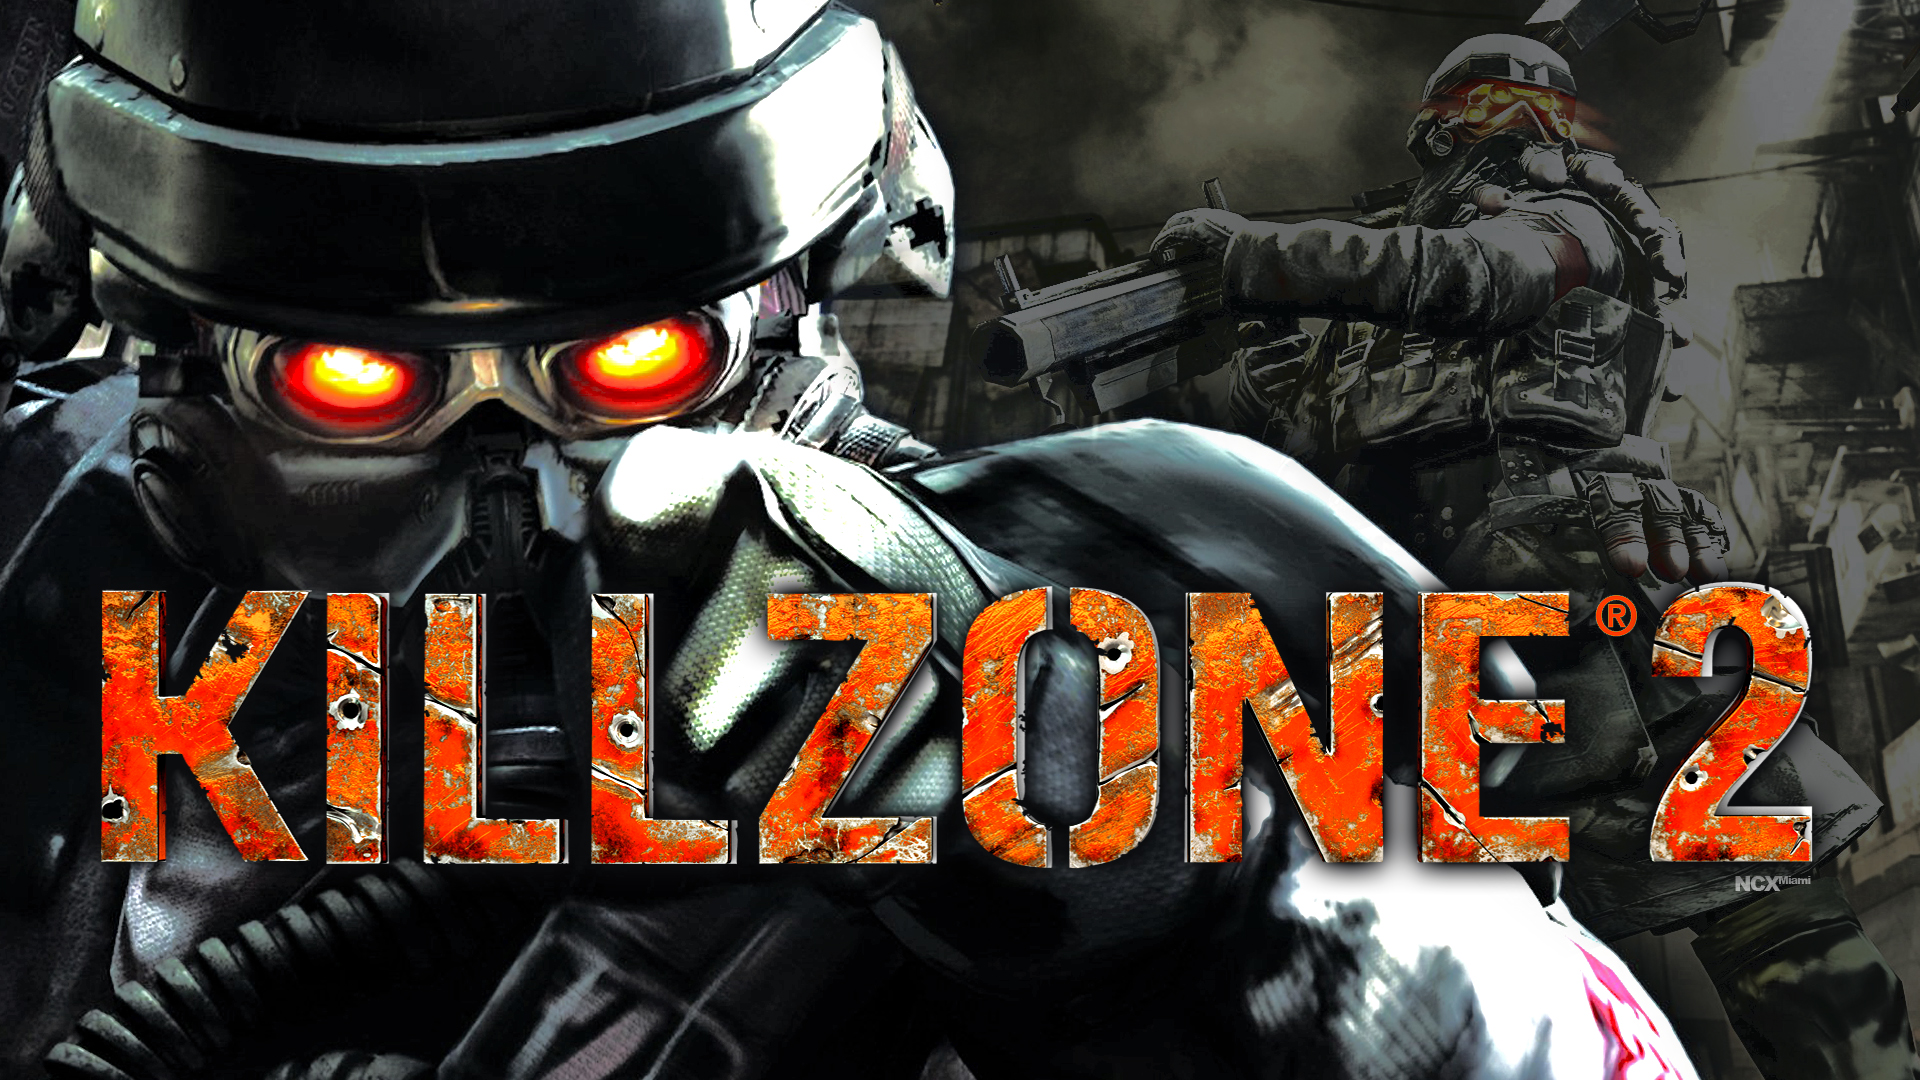 http://www.themindofgame.com/wp-content/uploads/2012/12/killzone2_wallpaper_1080p.jpg